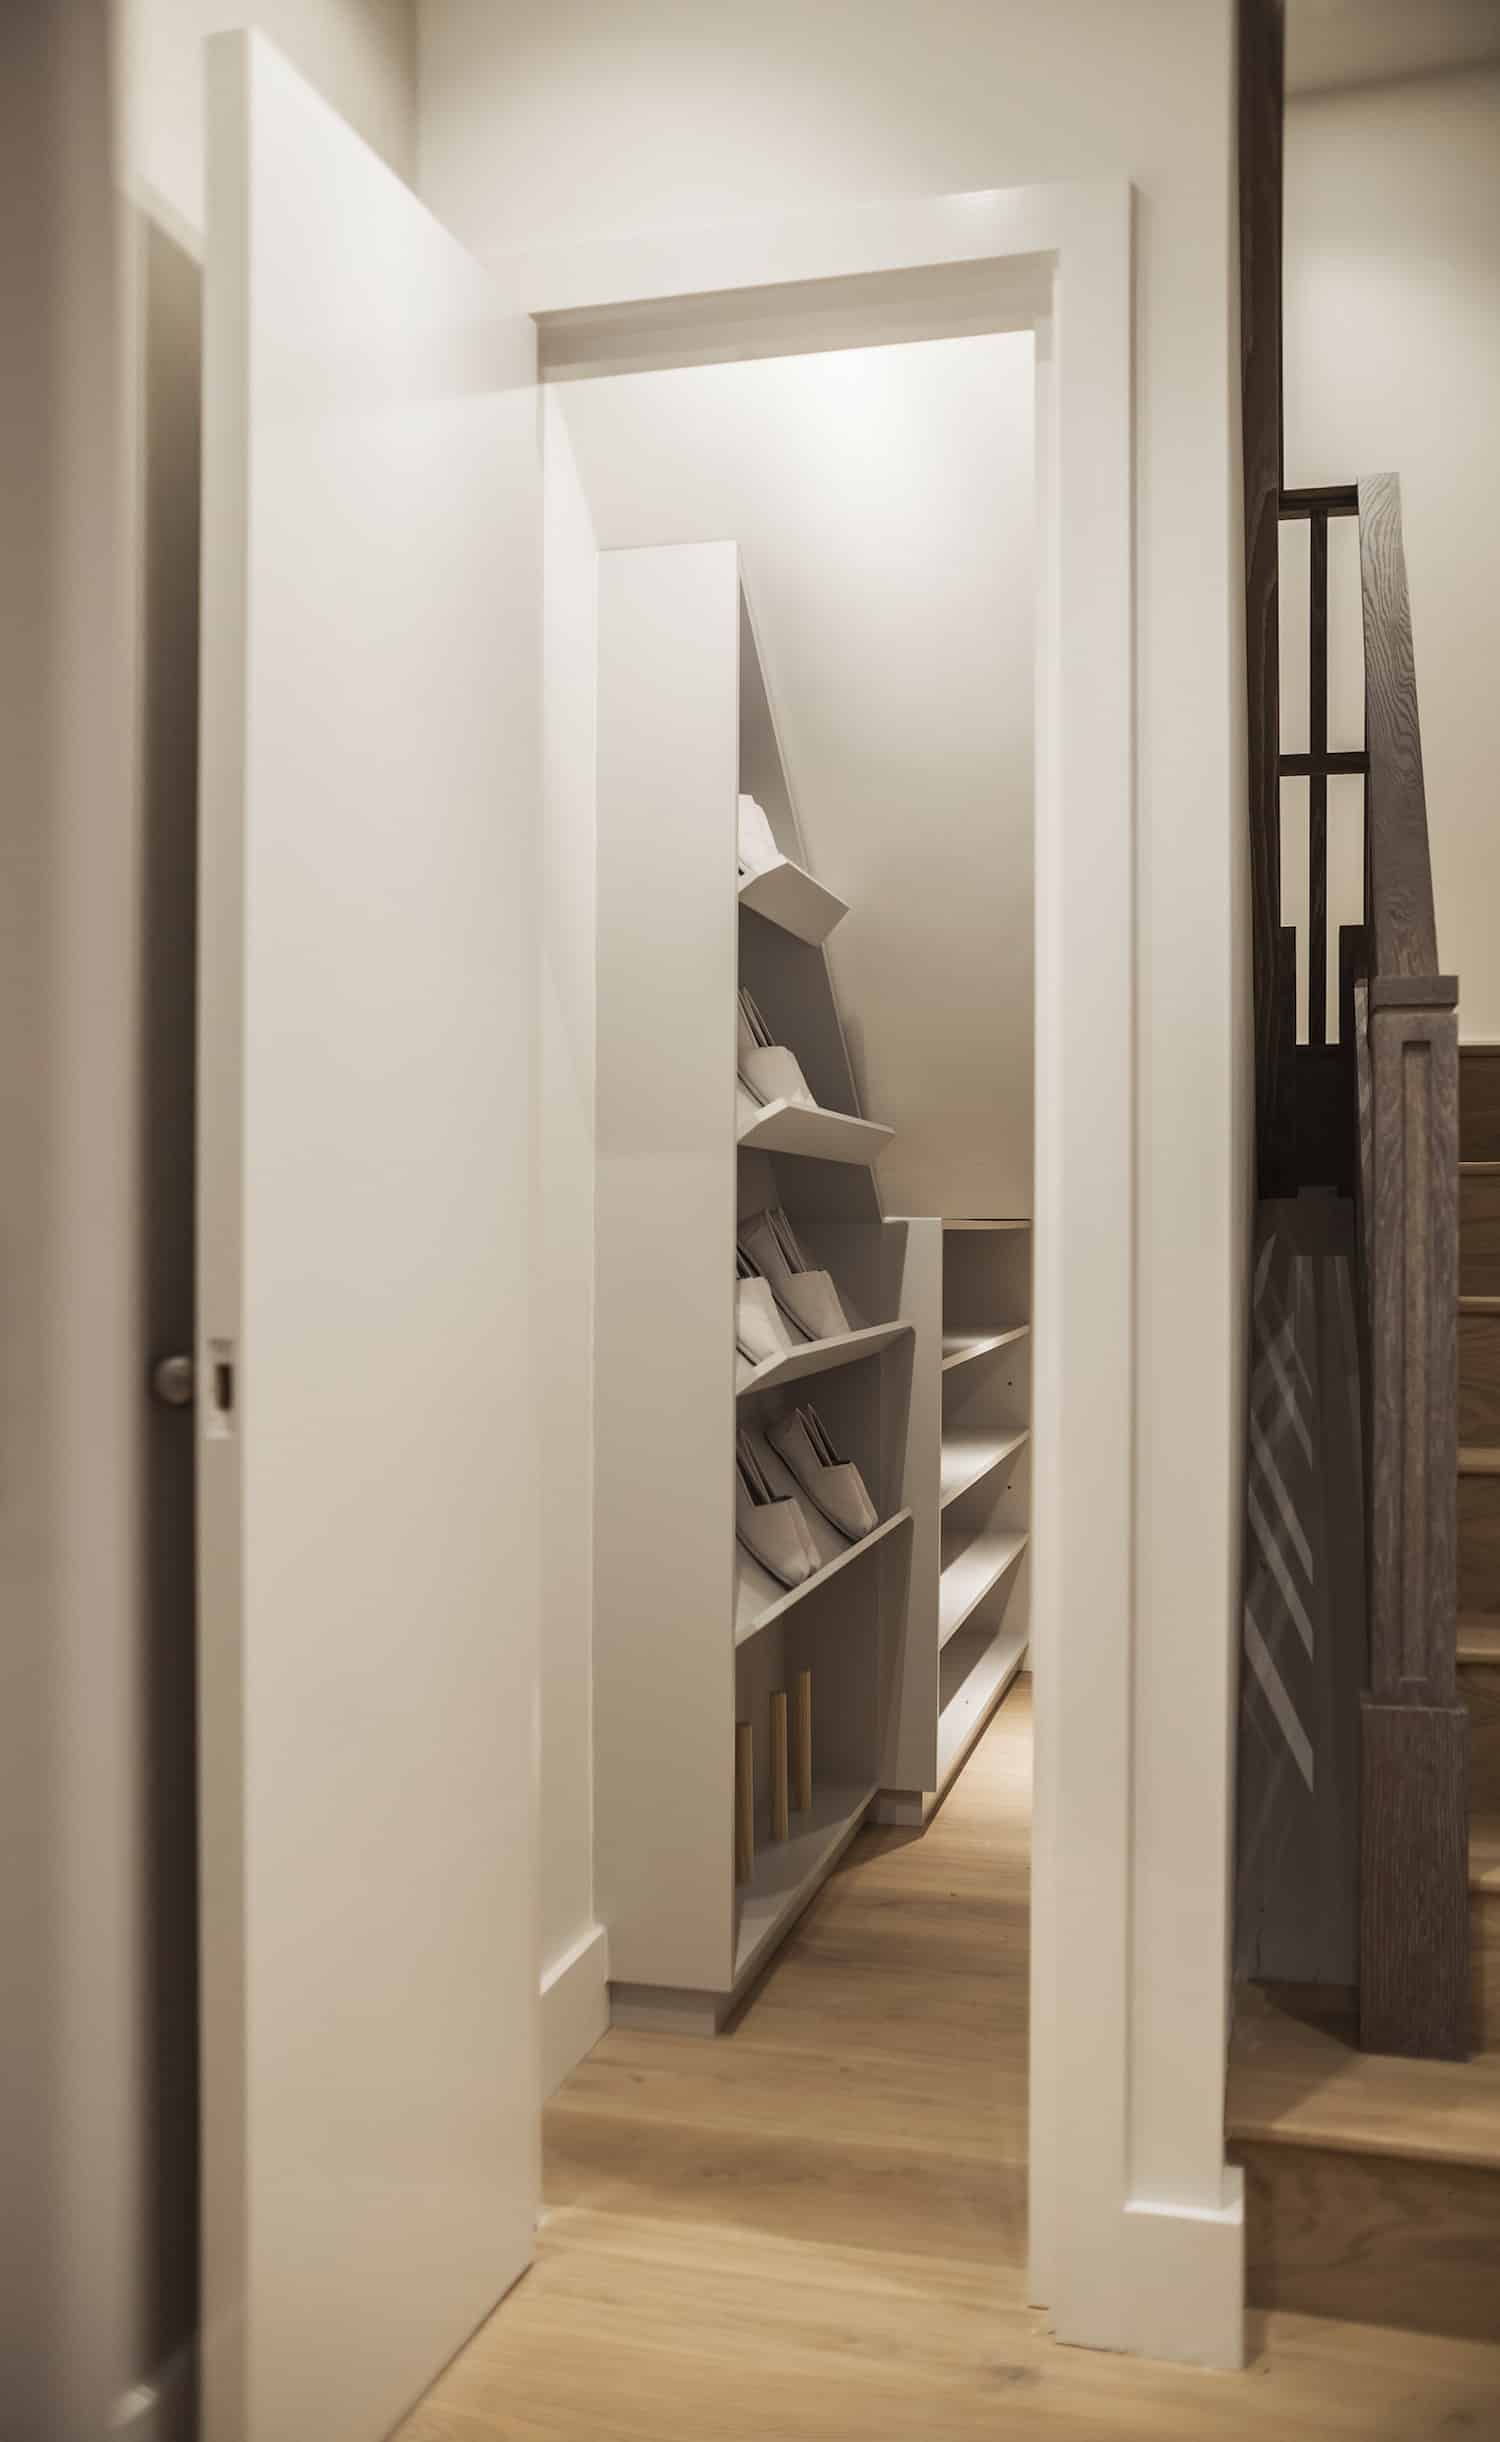 Renovation resulted in new stylish staircase with a storage closet underneath with capability to store shoes and other items.